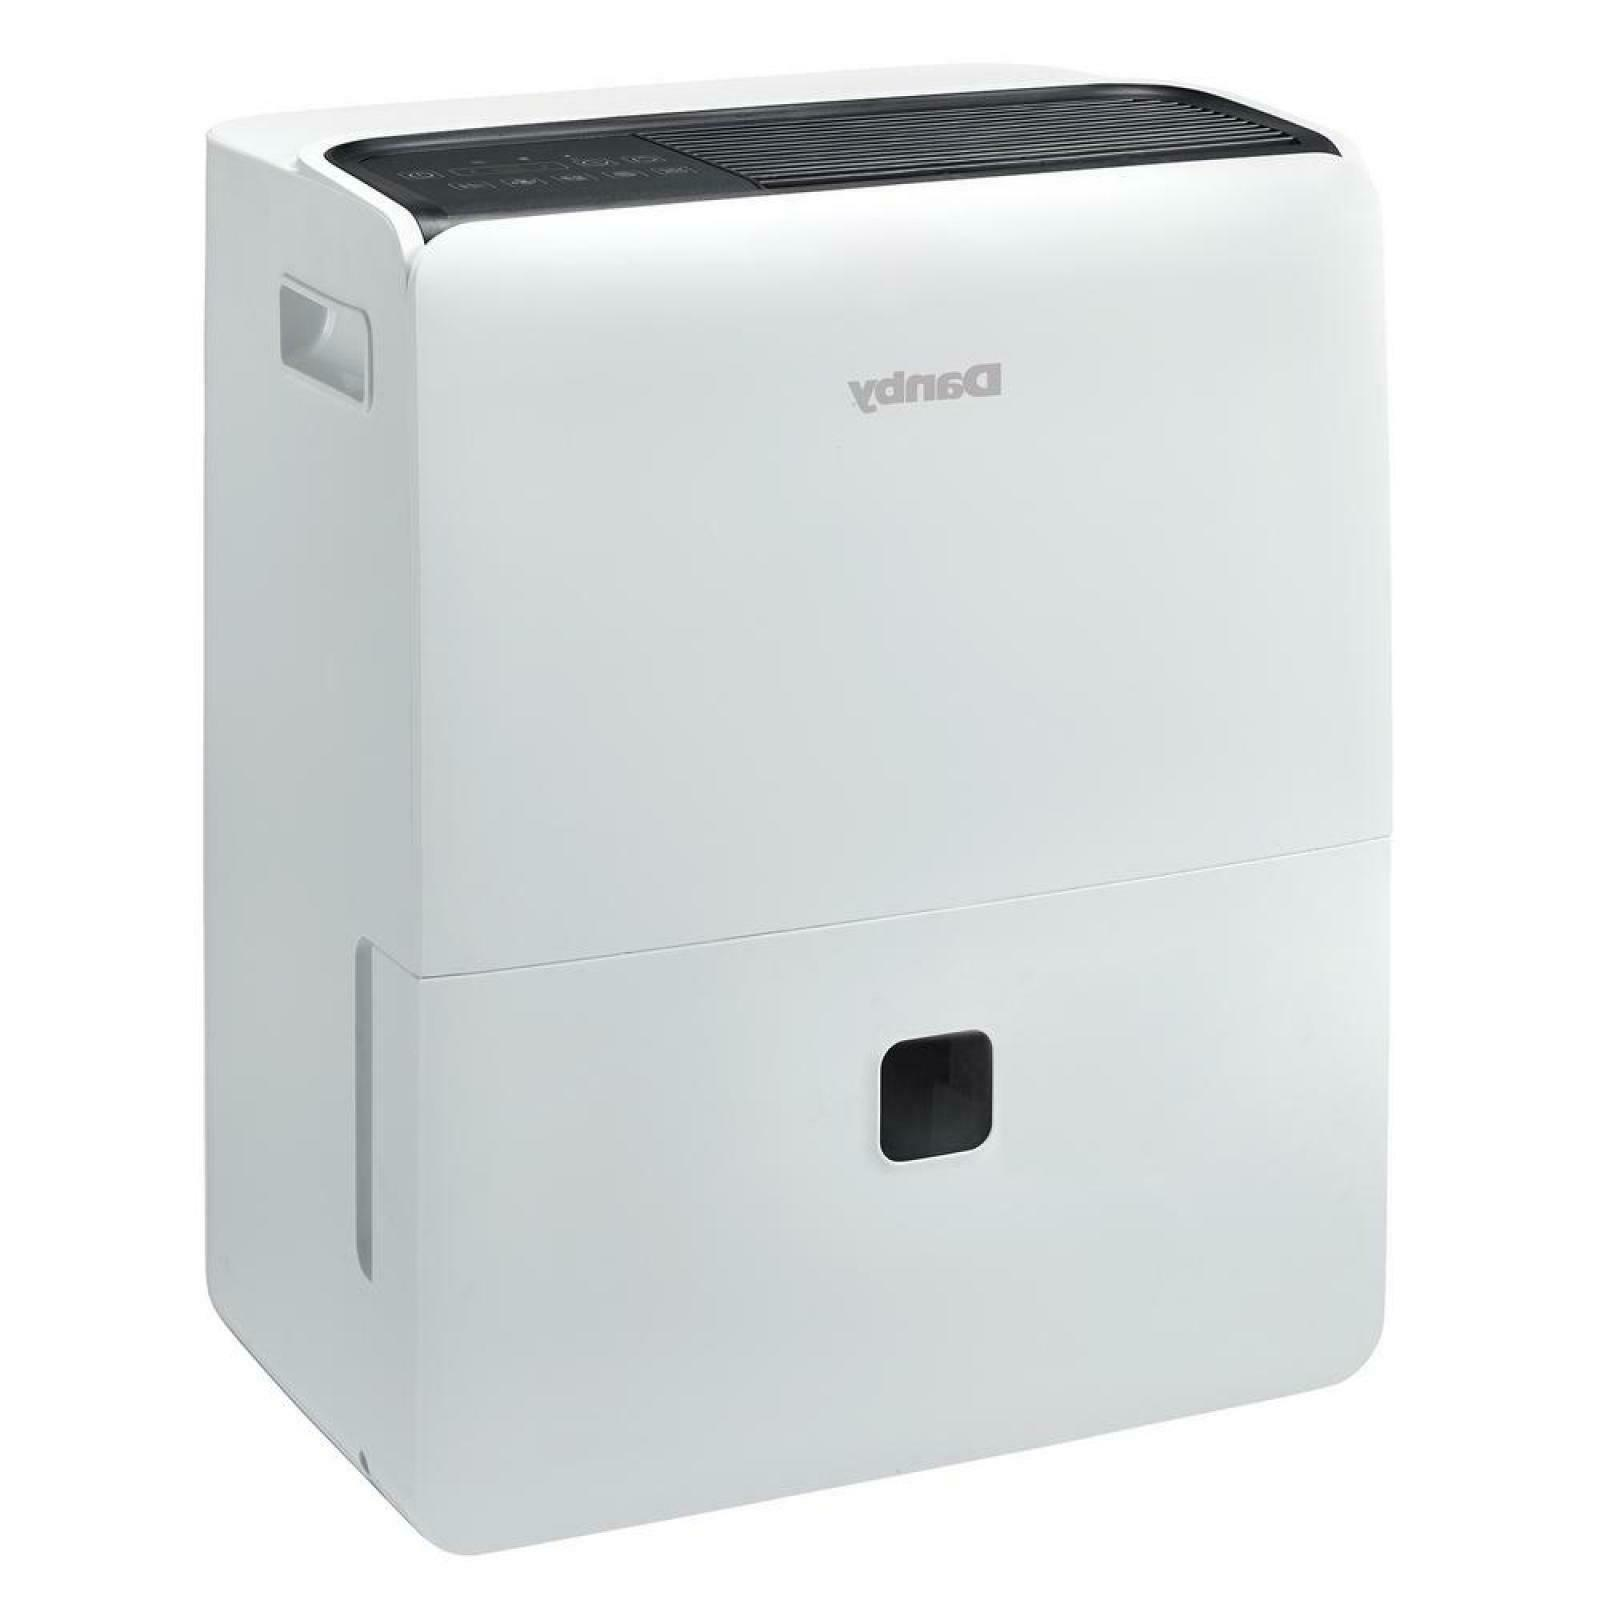 95 pint dehumidifier with pump 24 hour